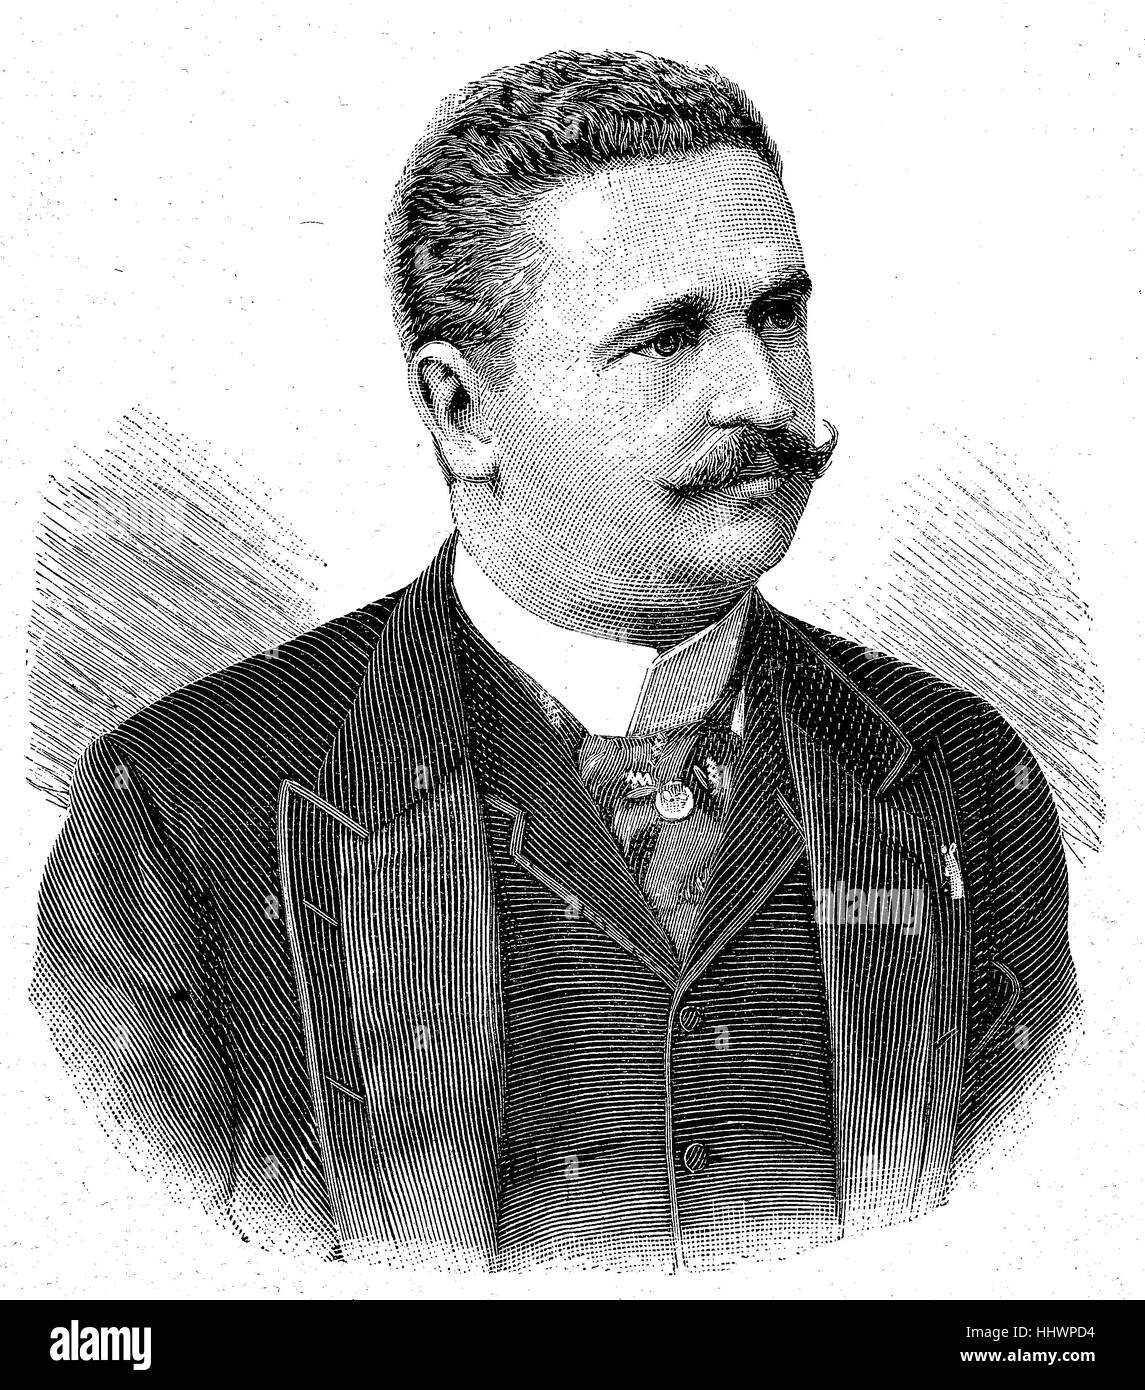 Konstantin Stoilov, 23 September 1853 O.S. - 23 March 1901 O.S., was a leading Bulgarian politician and twice Prime - Stock Image